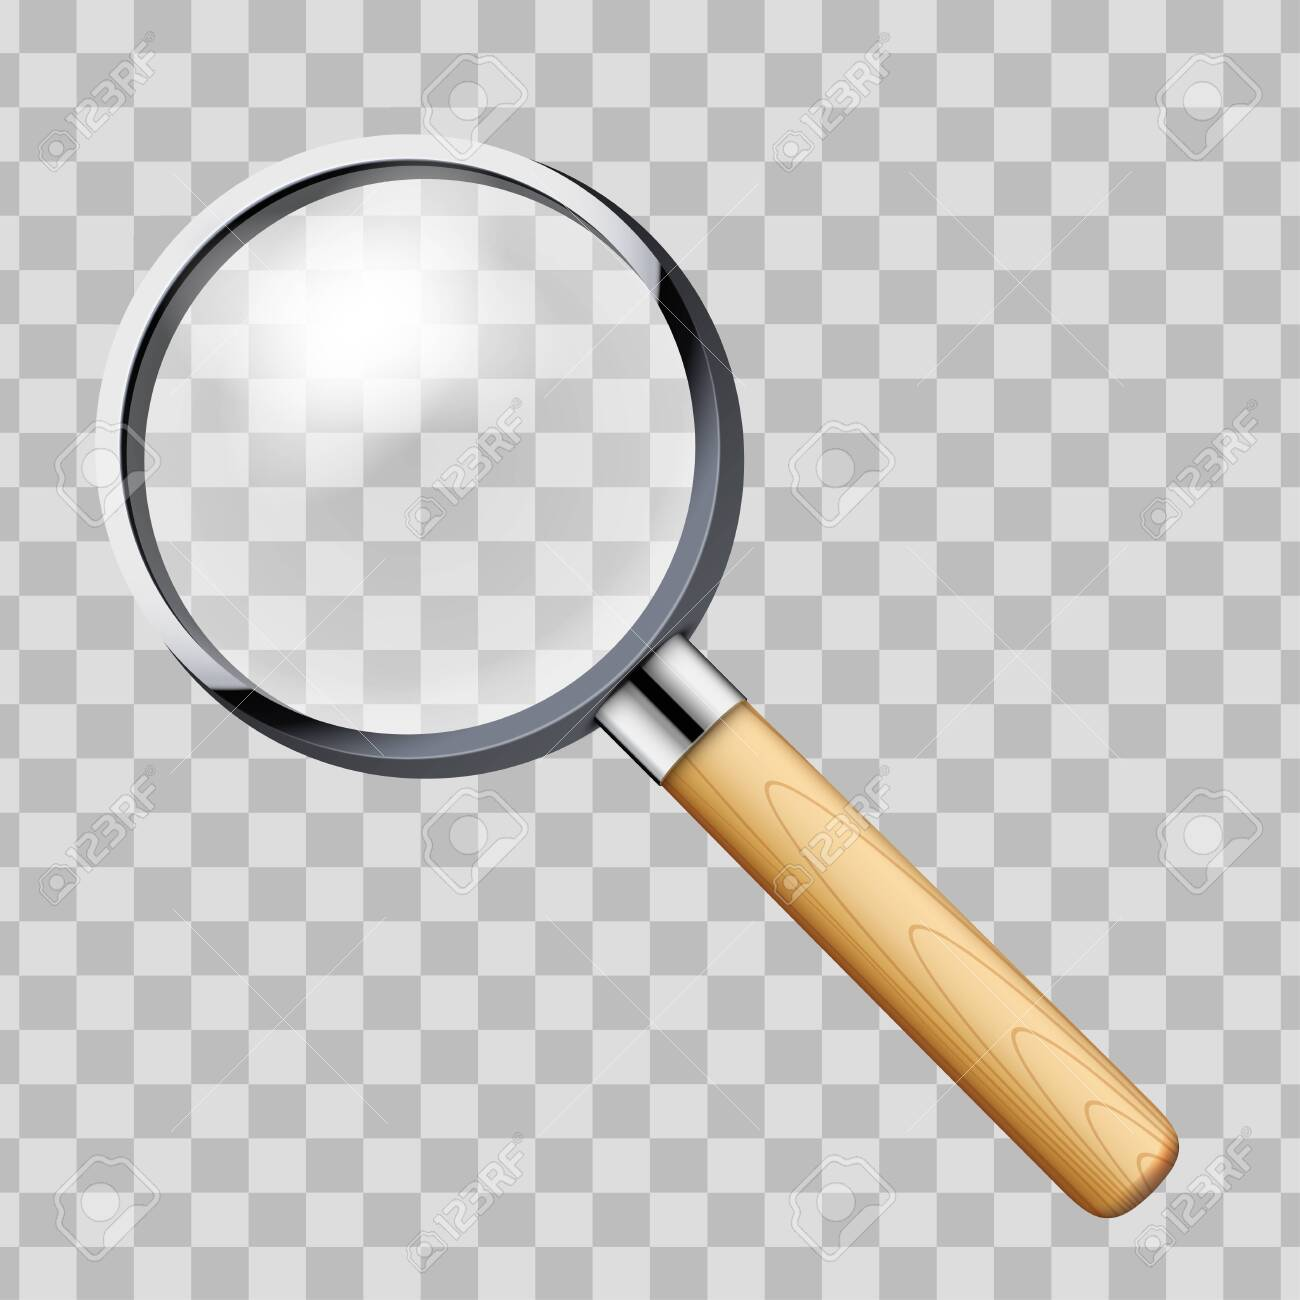 Vintage Magnifying glass with handle. Vector Illustration Isolated on transparent background. - 141048934